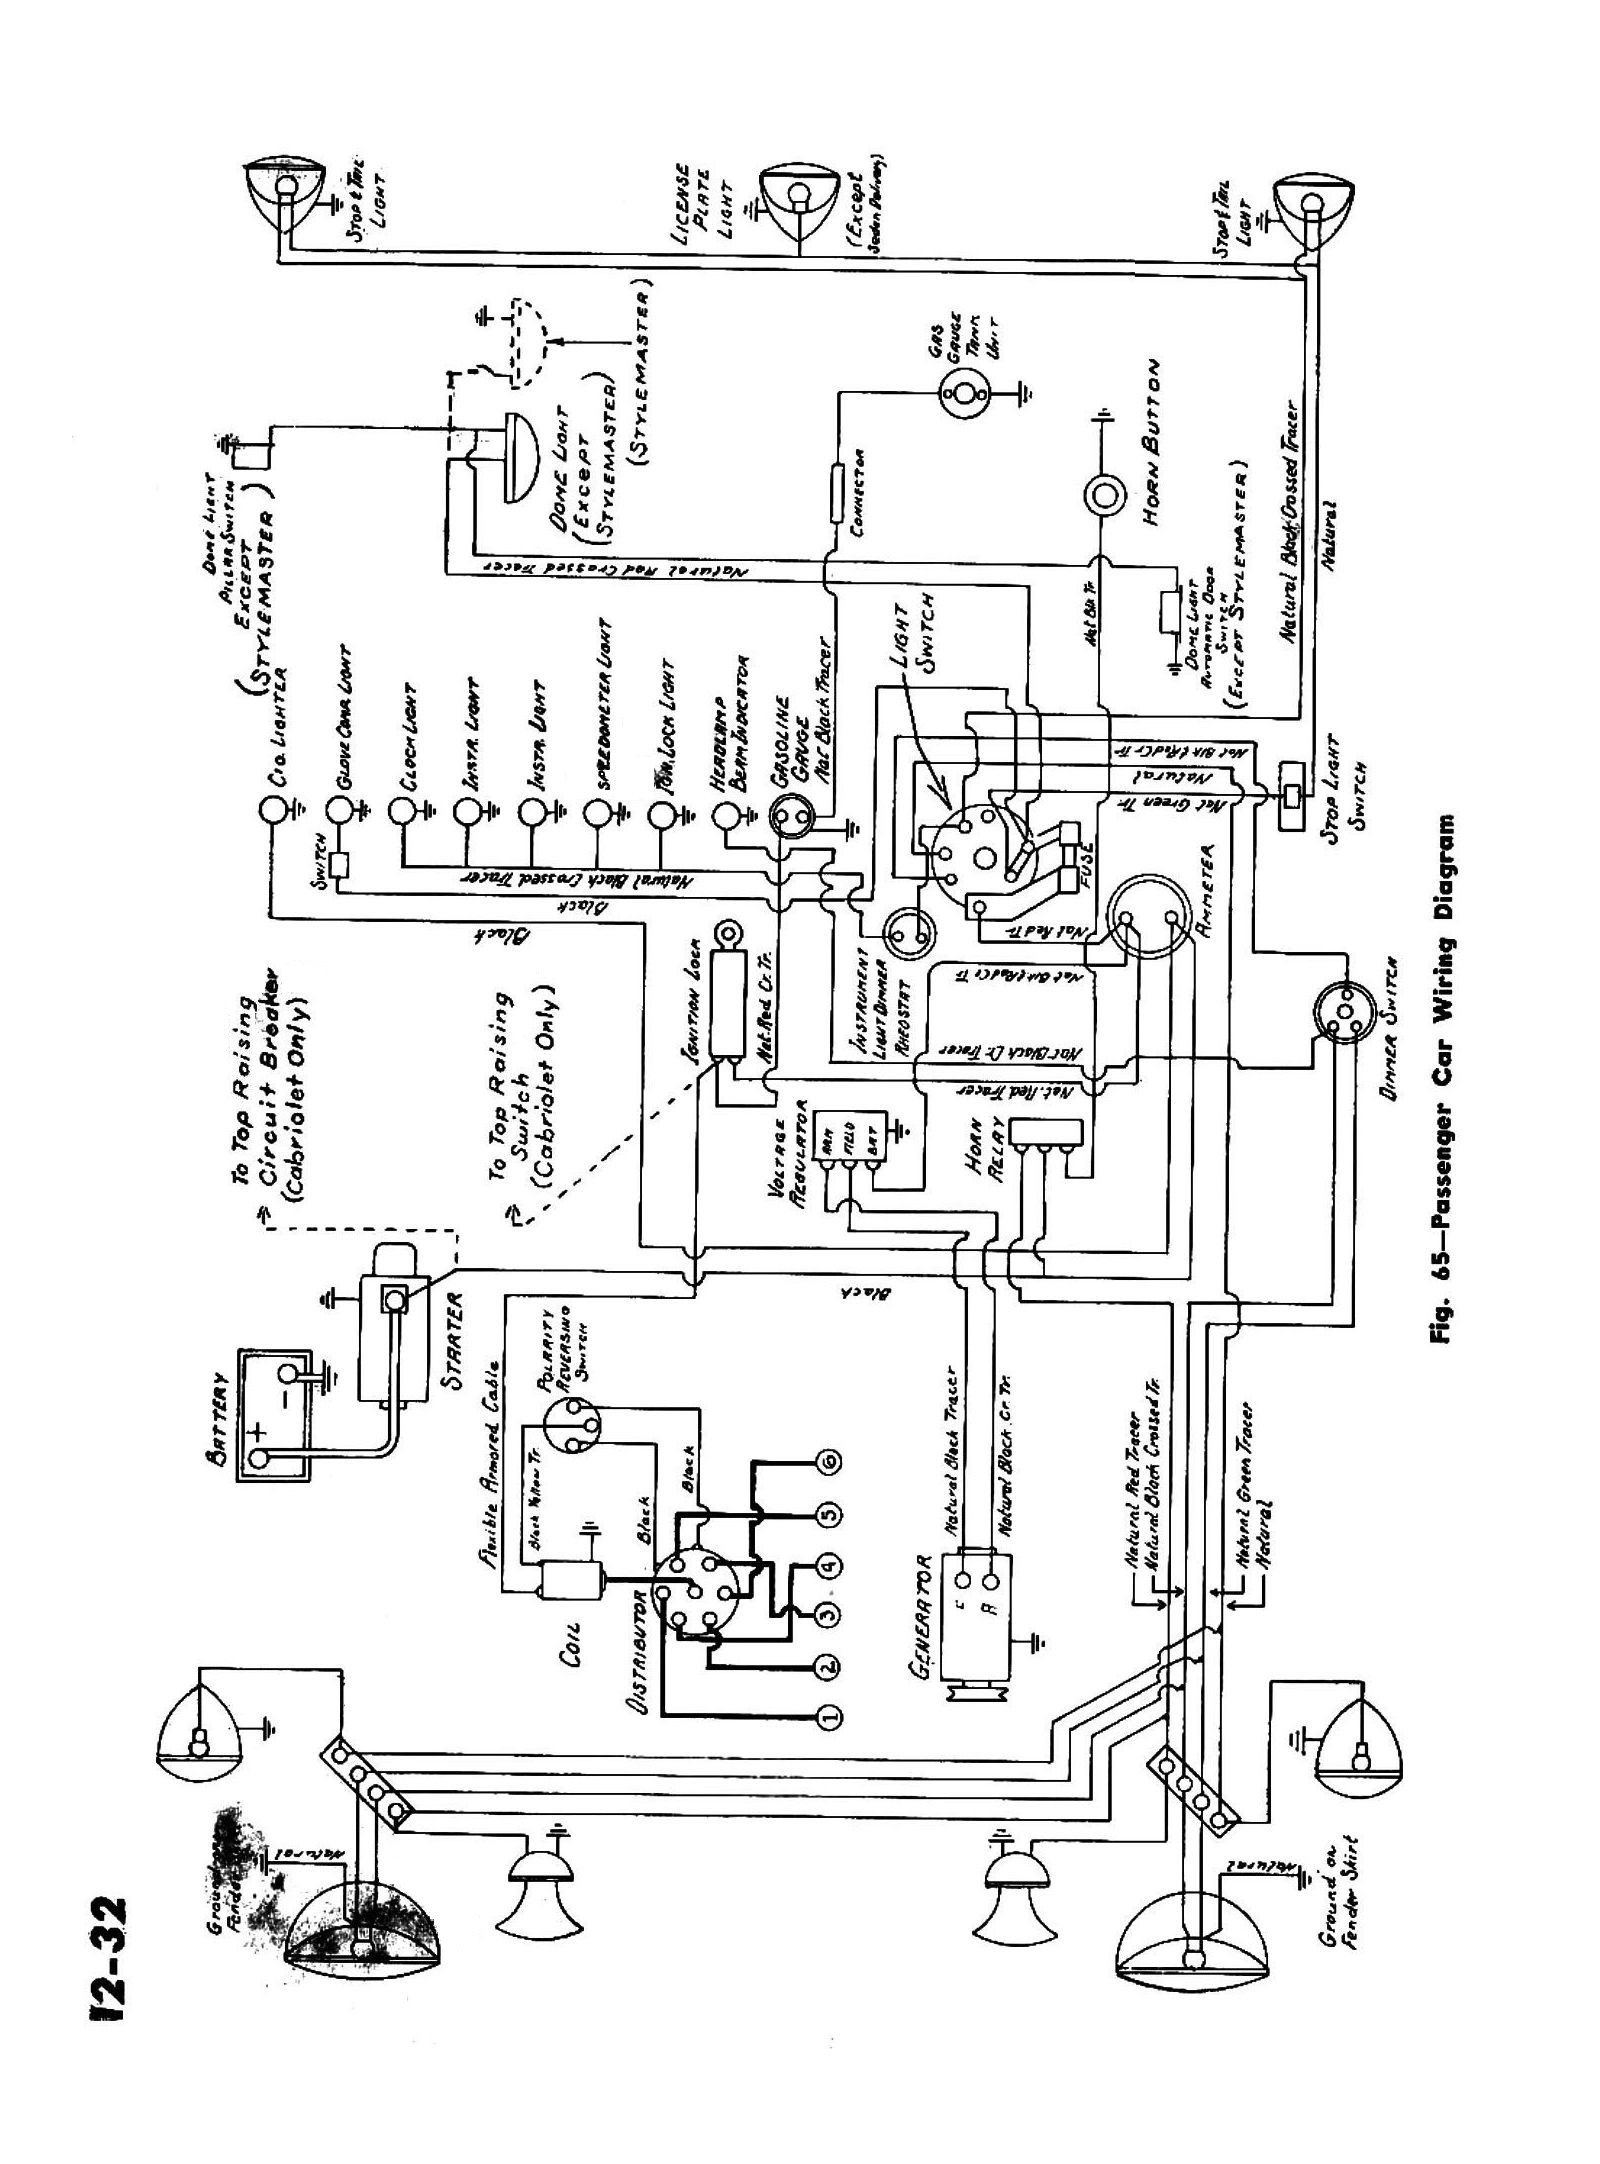 chevy wiring diagrams rh chevy oldcarmanualproject com color wiring diagrams for cars and trucks color wiring diagrams for cars and trucks